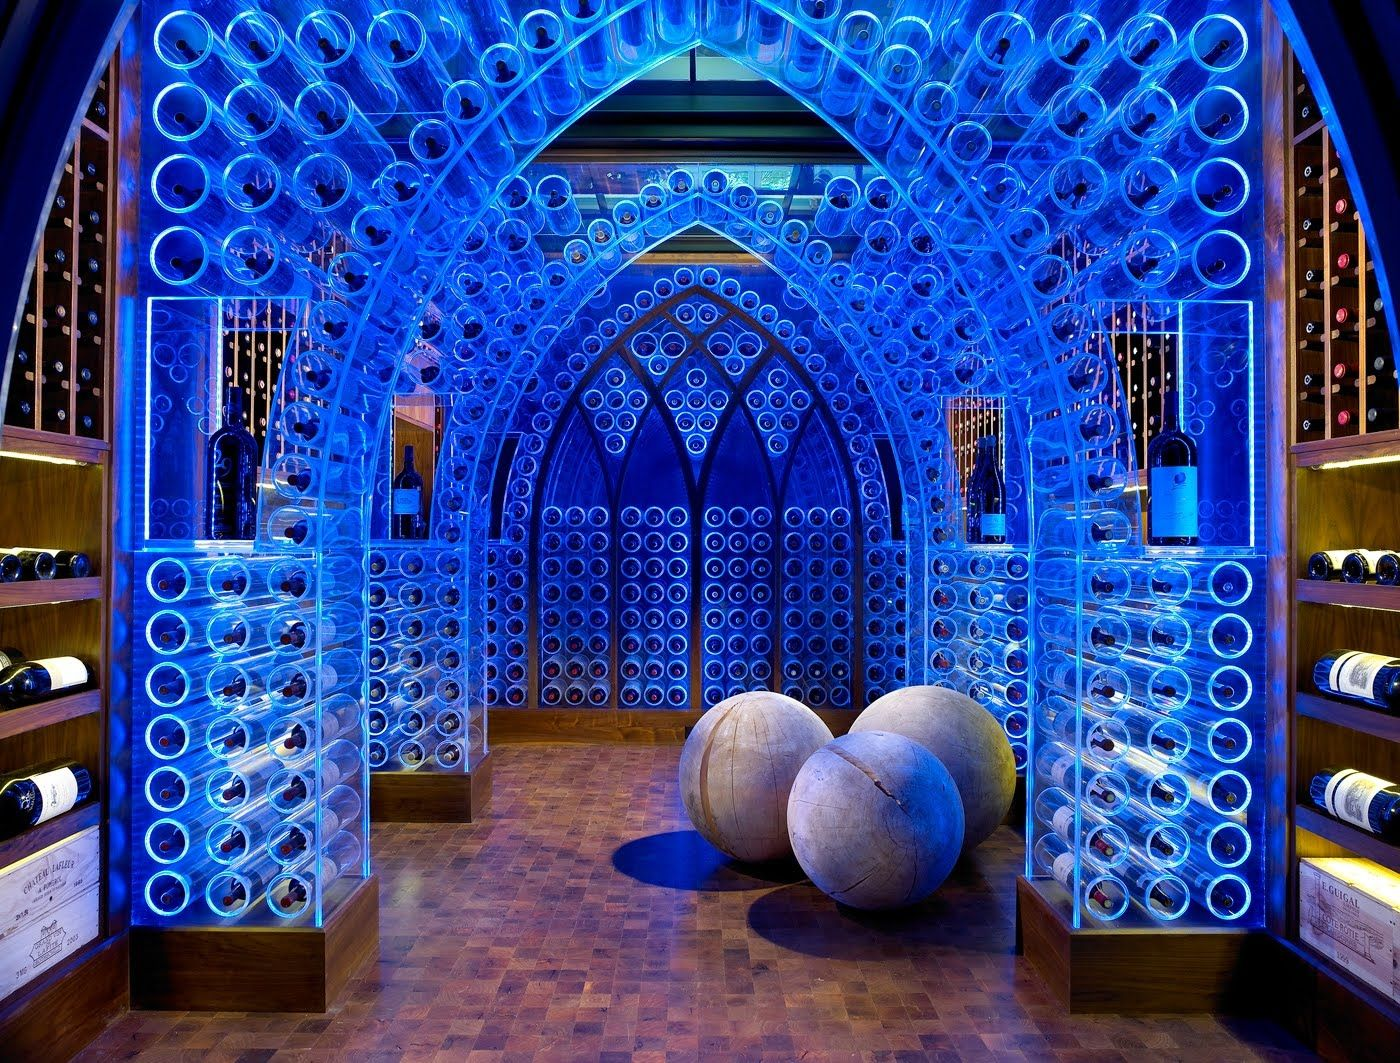 Amazing and beautiful wine cellar... what should we taste first!?!